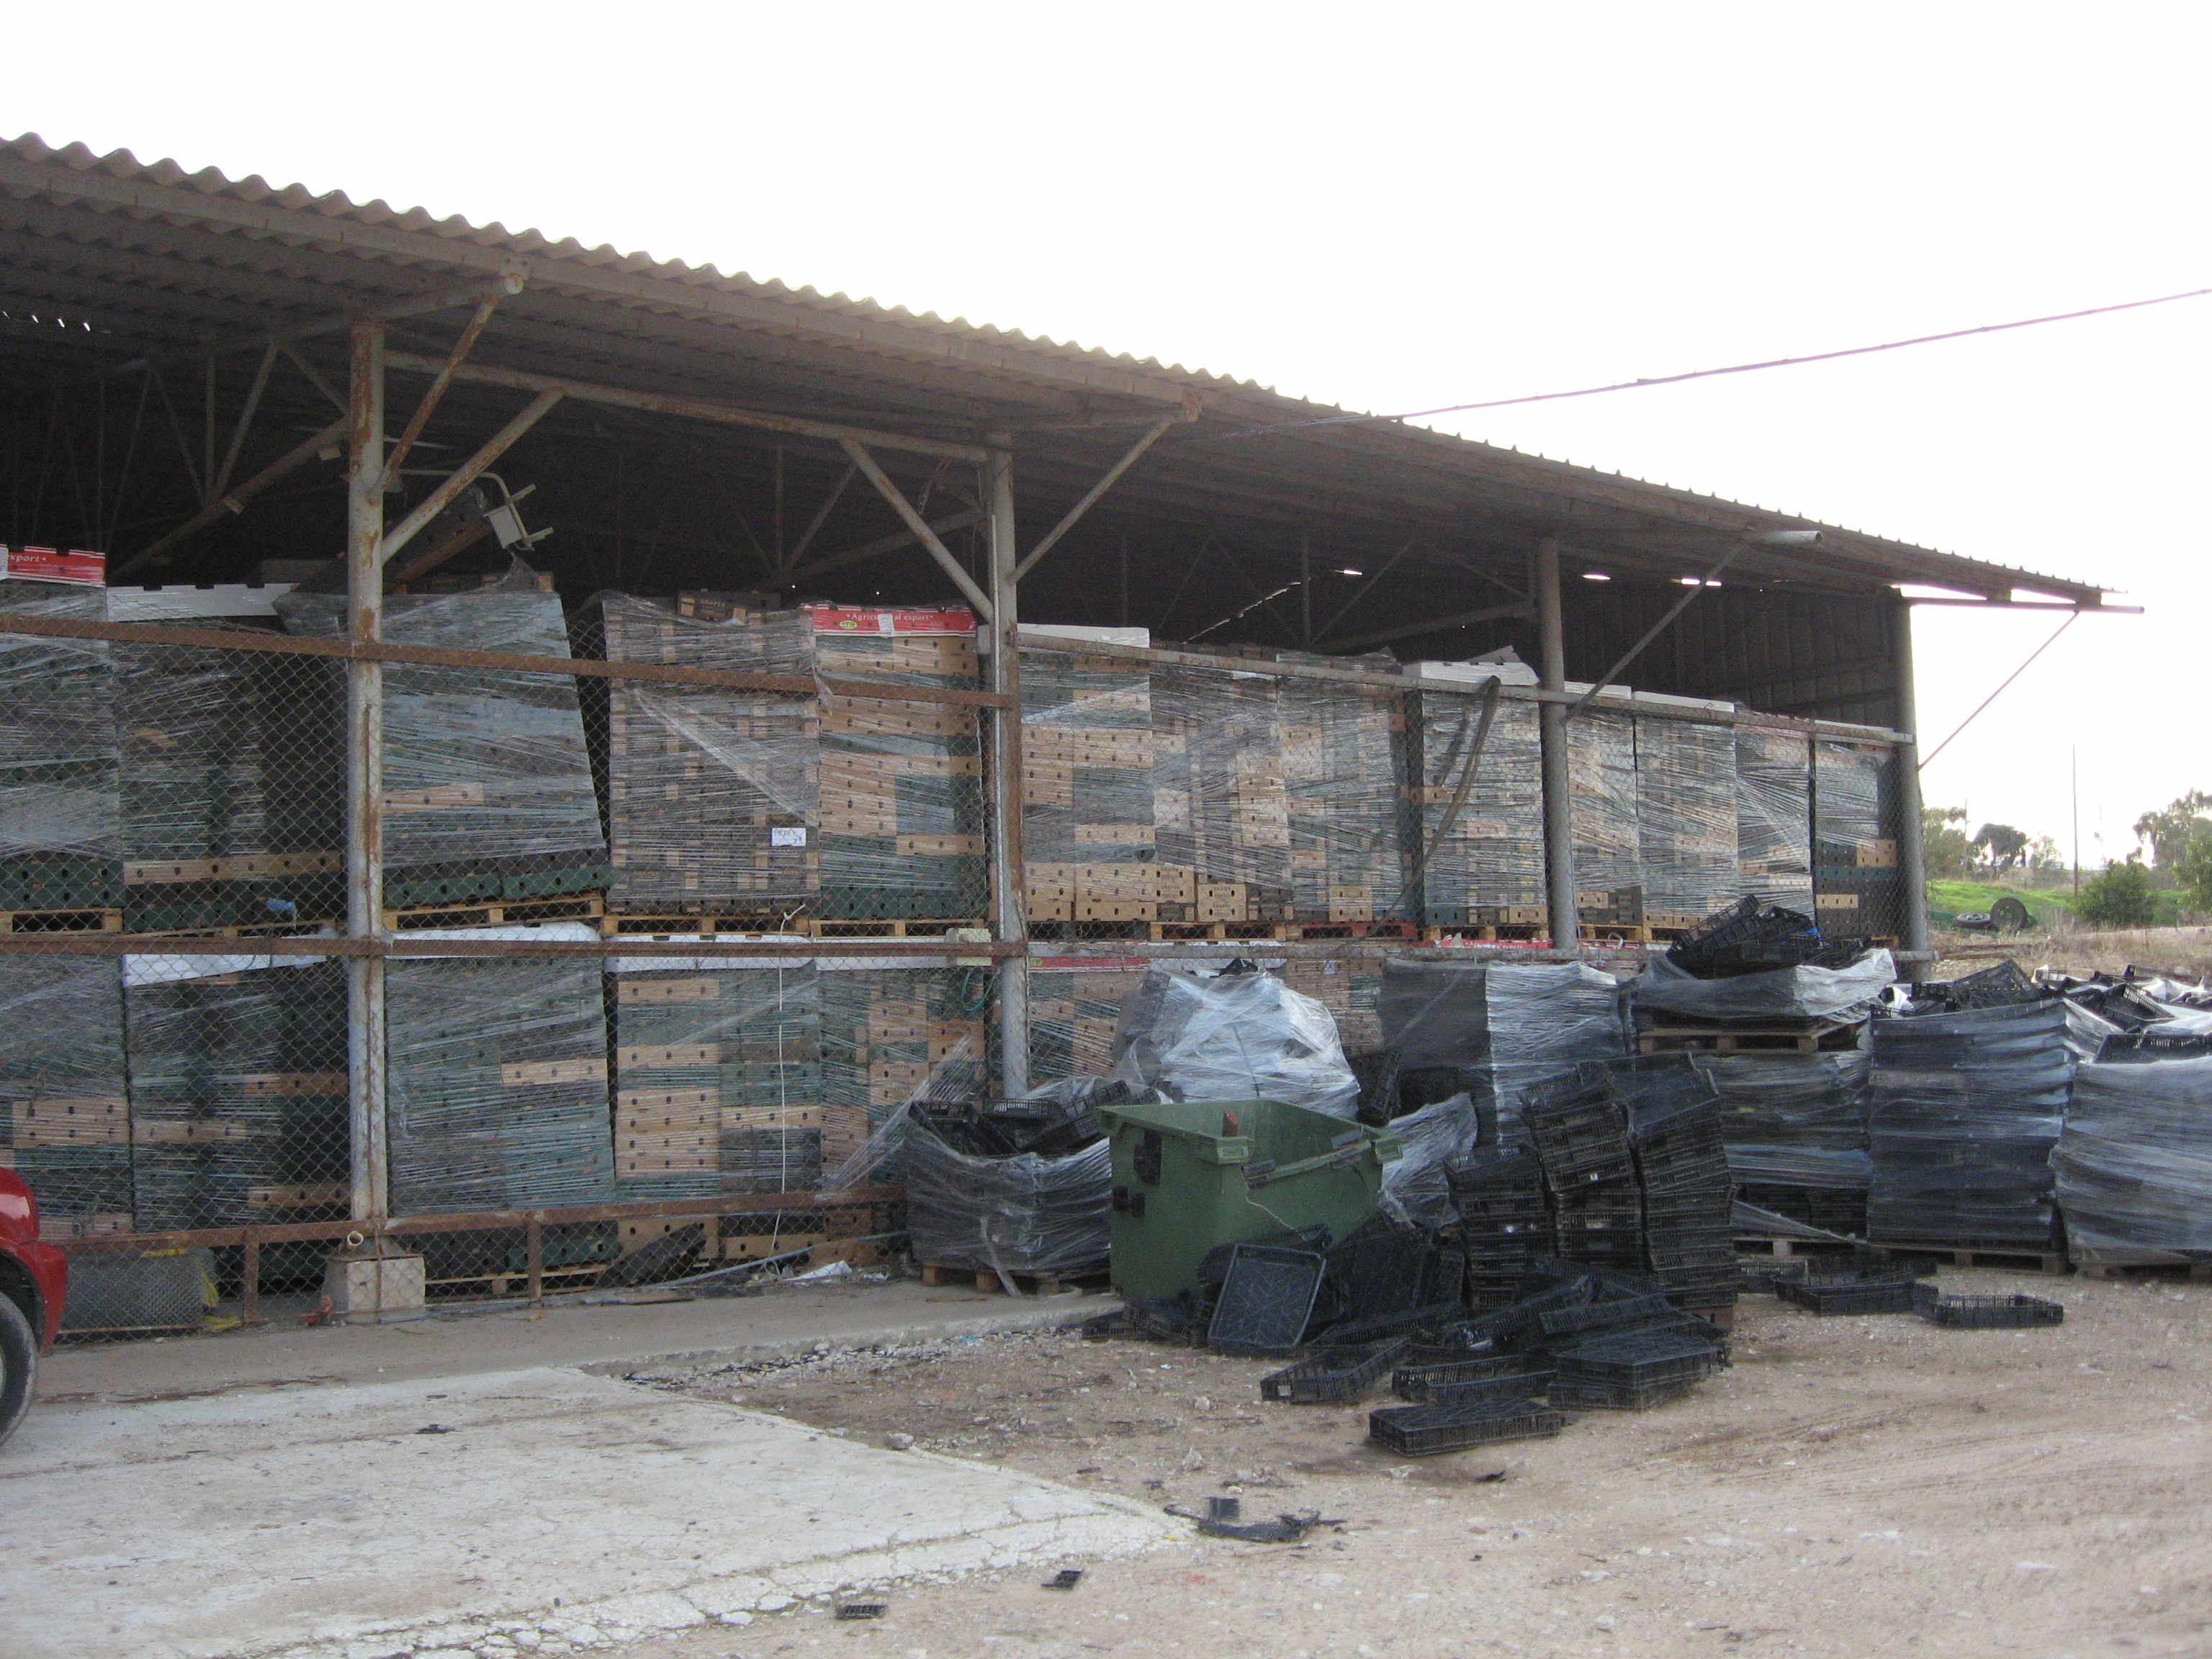 Mehadrin'sstorage house for packaging in Beqa'ot